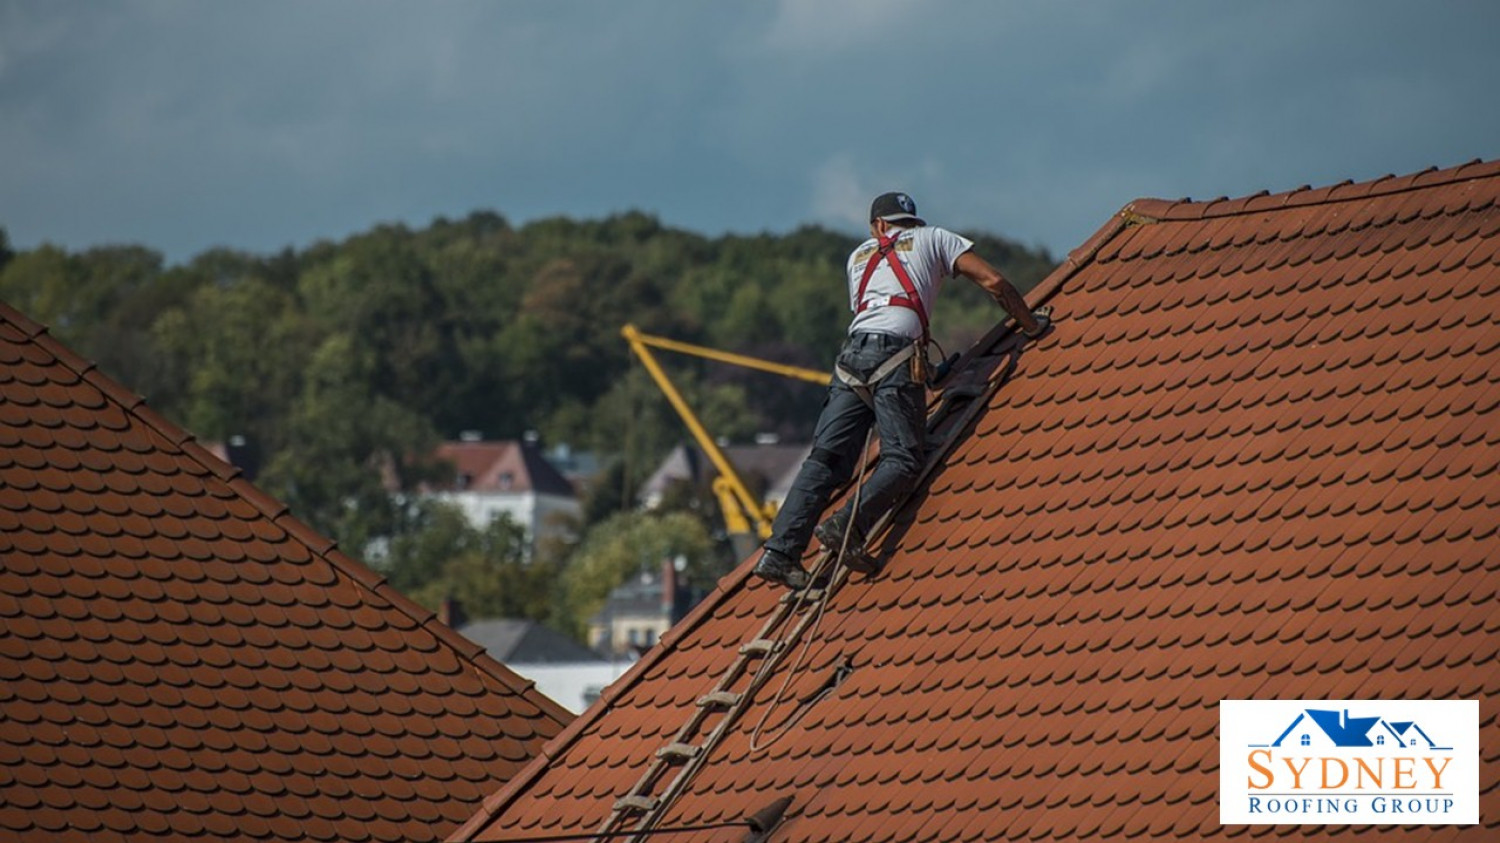 Concrete Roofing Experts in Sydney - Sydney Roofing Group Infographic